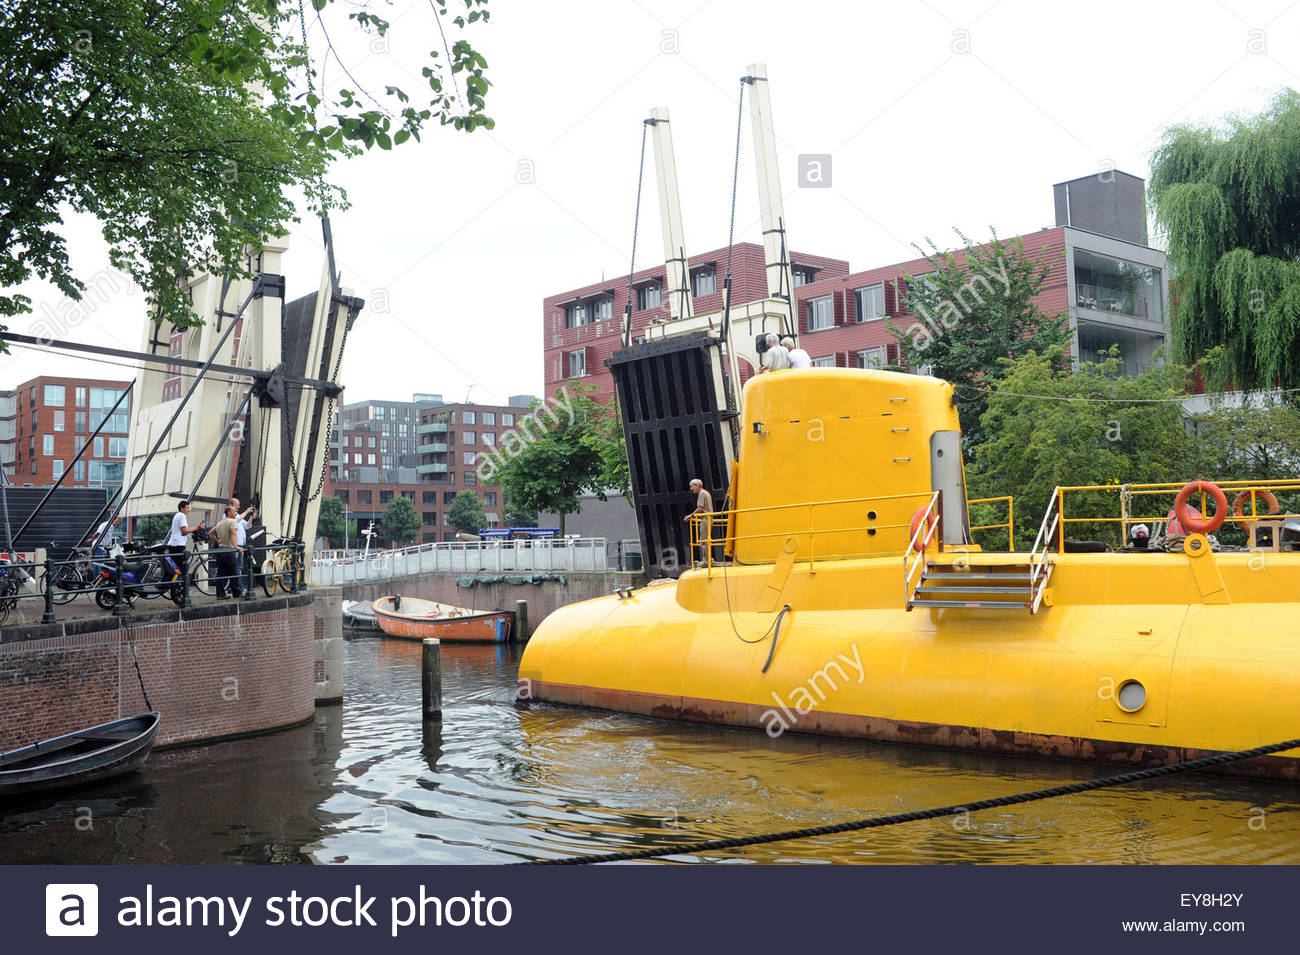 amsterdam-the-netherlands-24th-july-2015-visitors-to-amsterdam-could-EY8H2Y.jpg